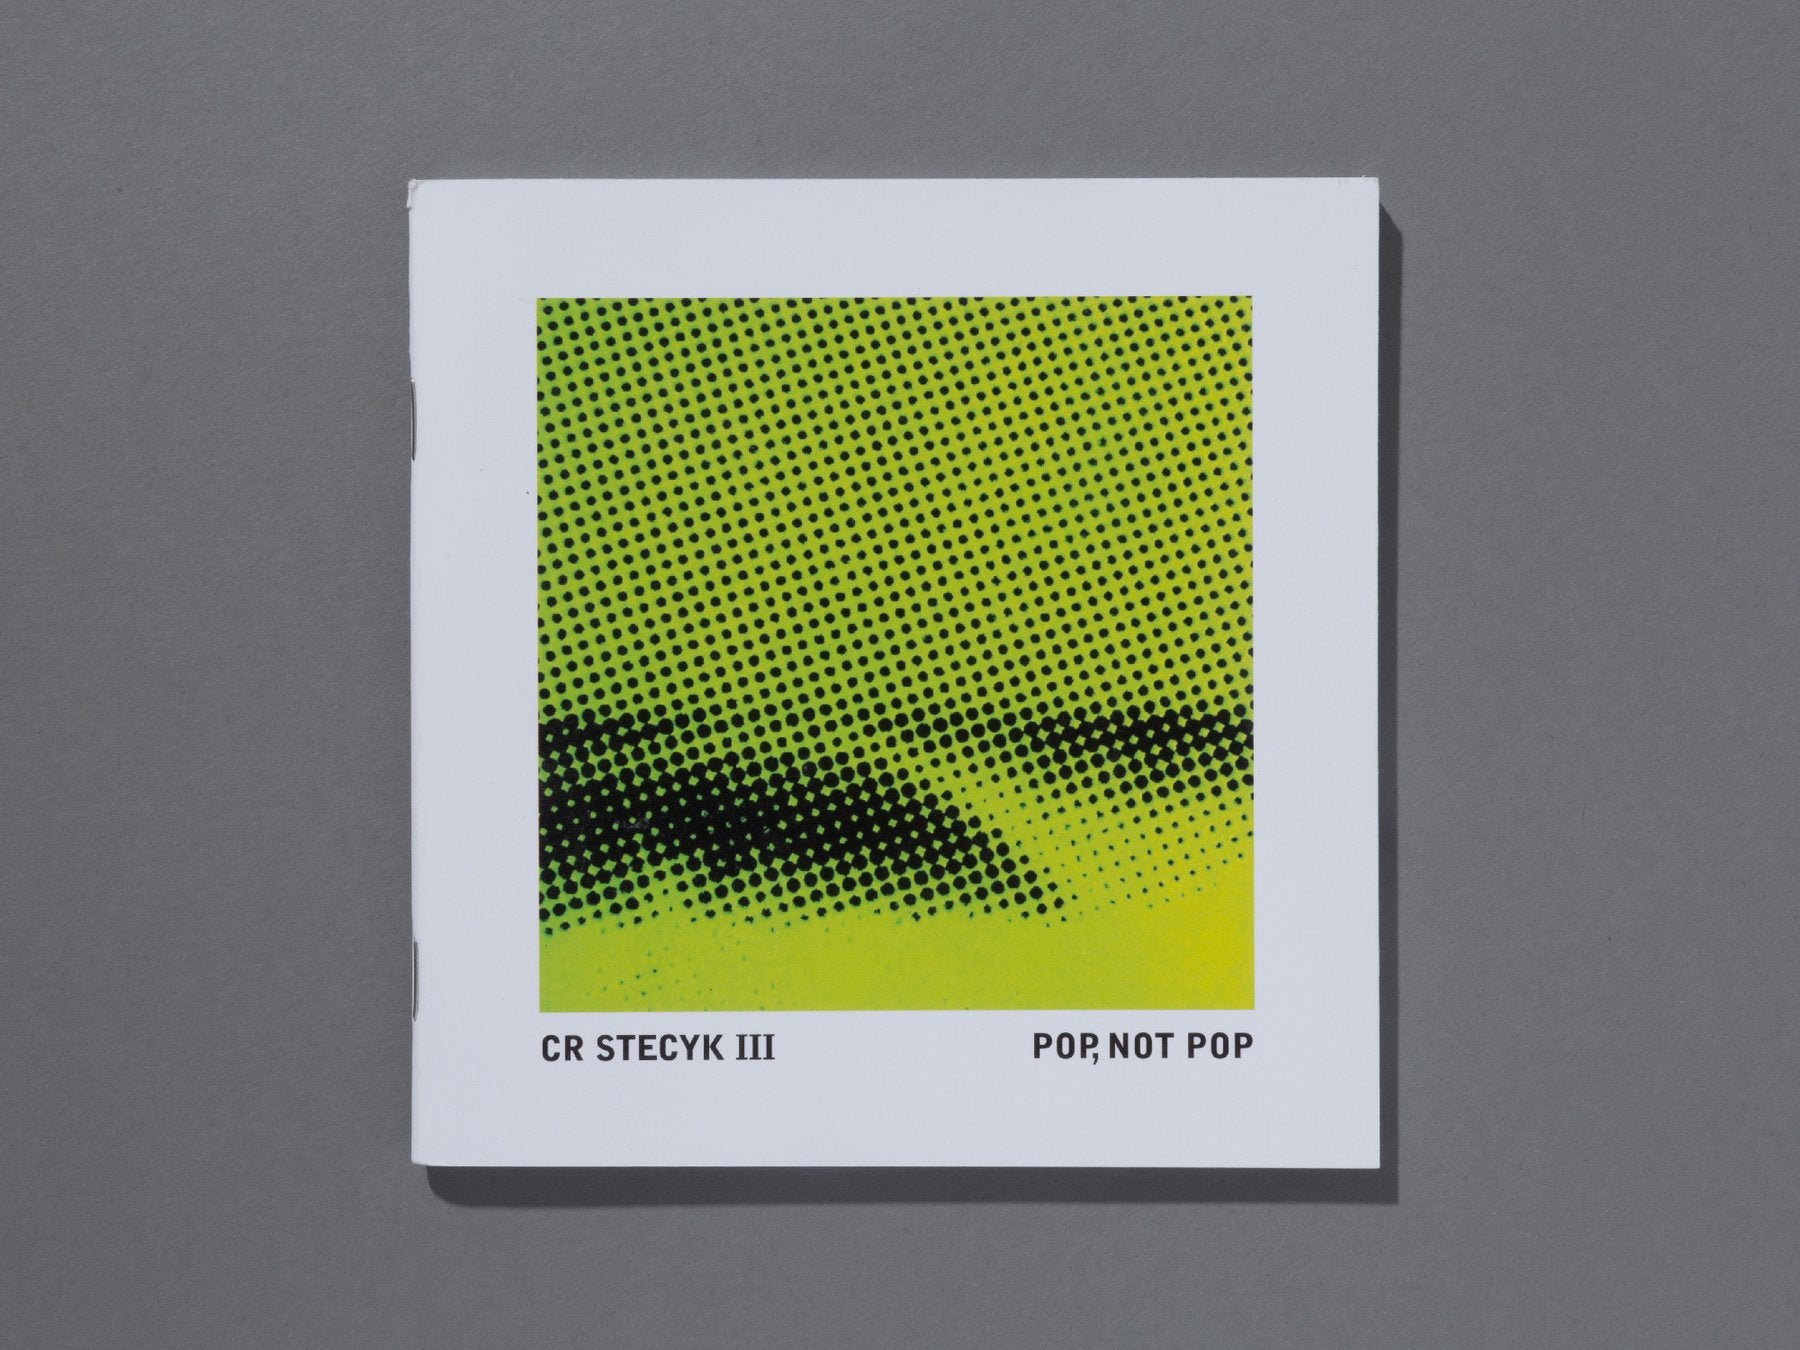 Pop, Not Pop Zine by CR Stecyk III